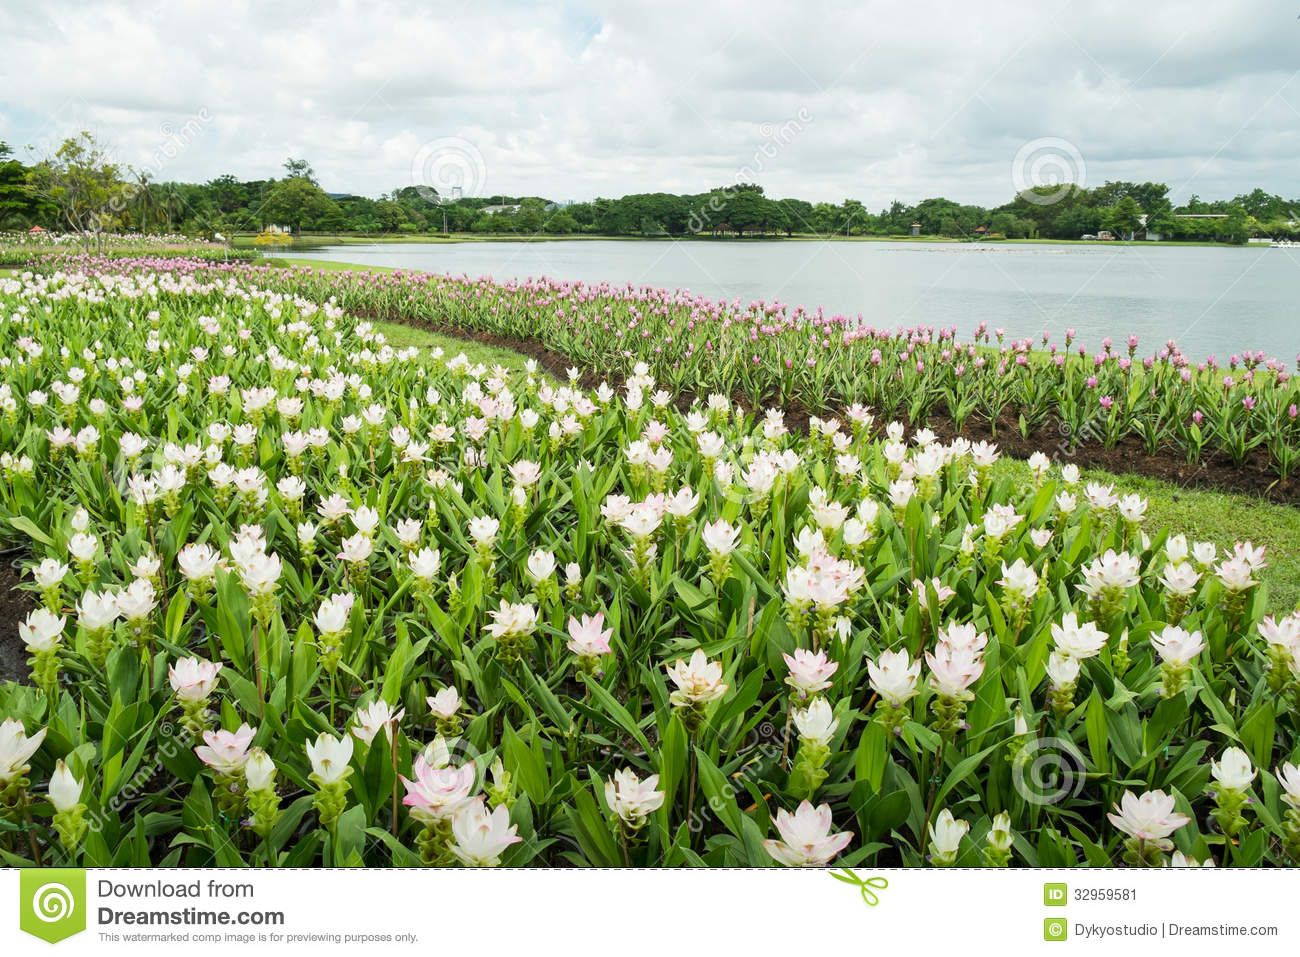 White and pink siam tulip patumma flower garden along the lake white and pink siam tulip patumma flower garden along the lake mightylinksfo